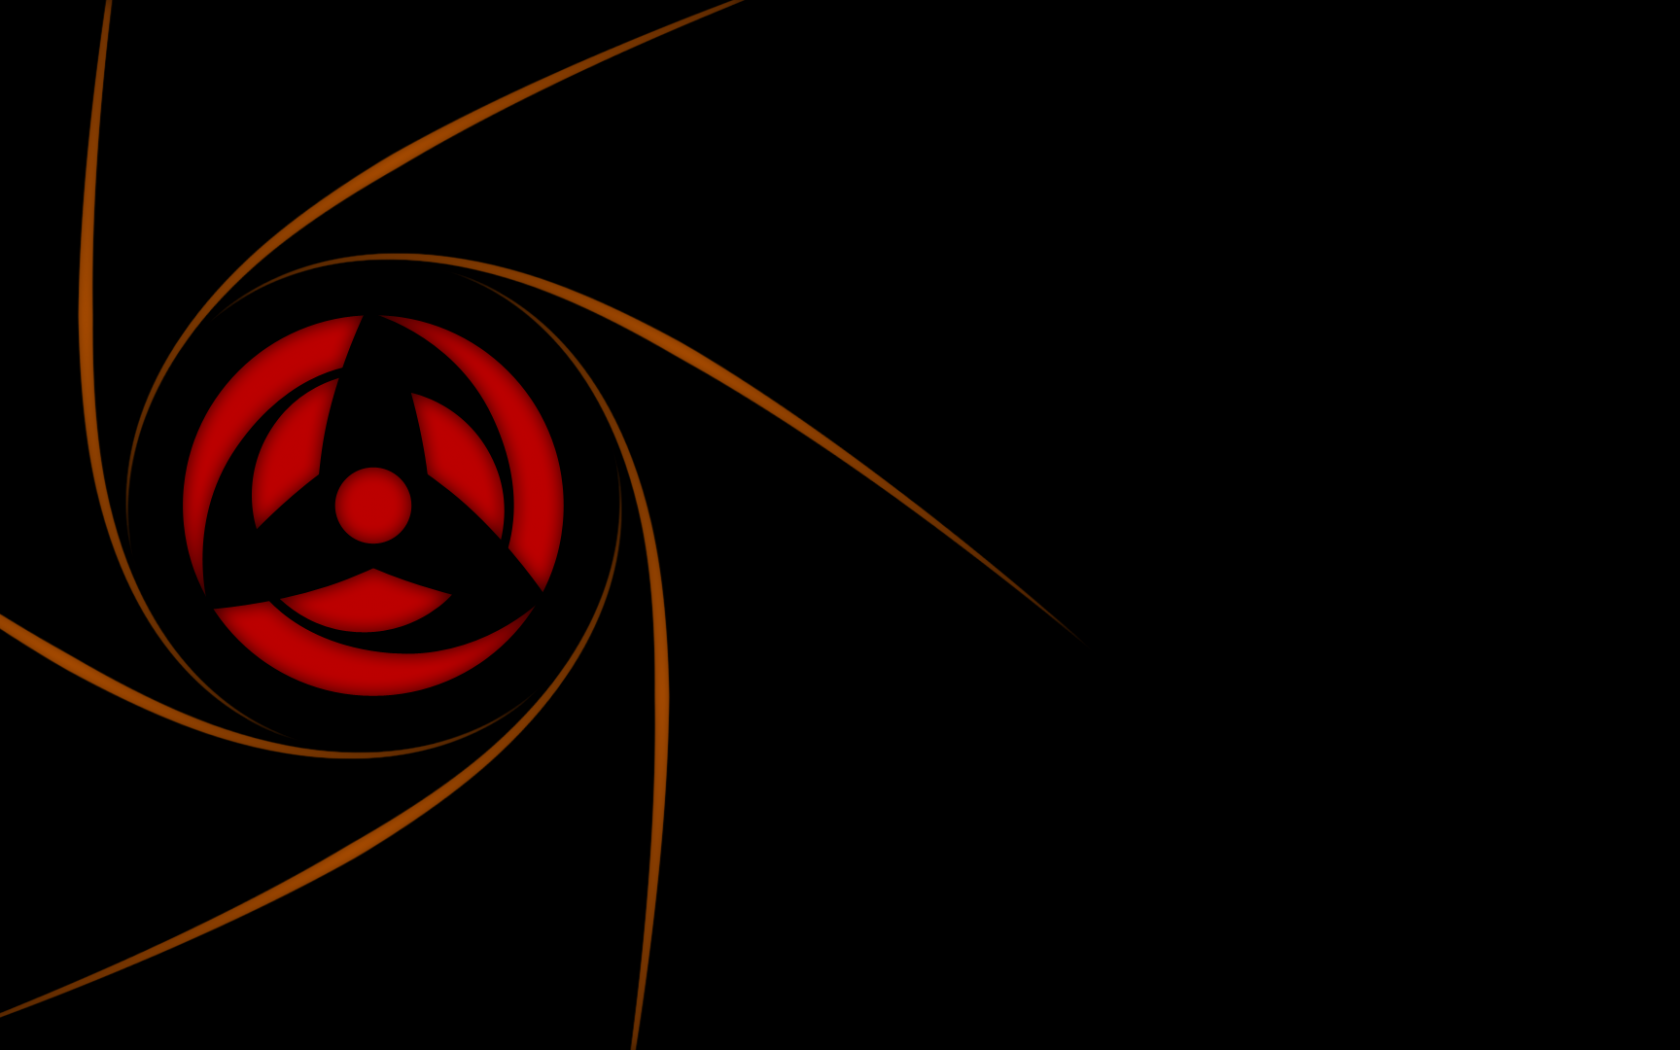 Download 1680x1050 Sharingan Obito Naruto Wallpapers for MacBook 1680x1050